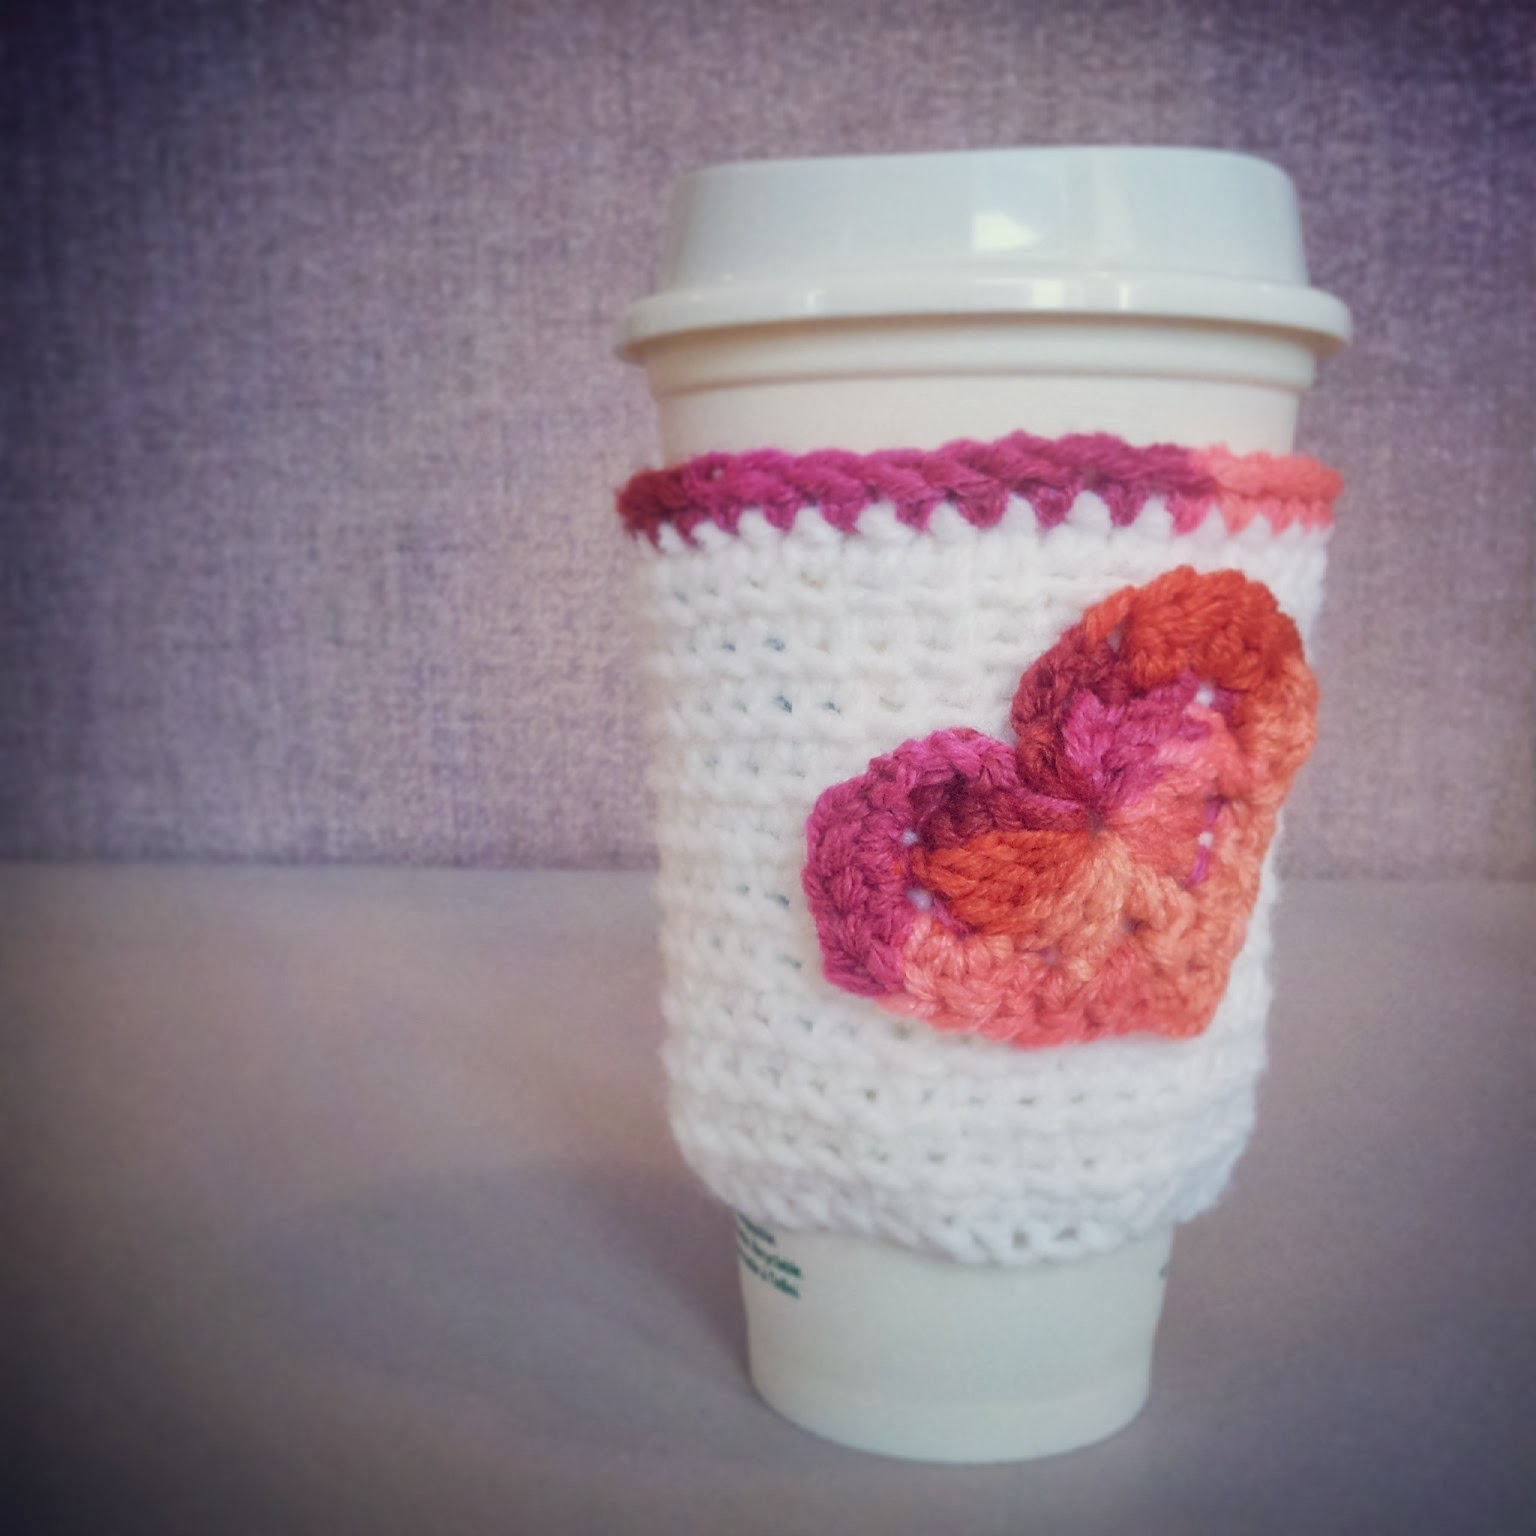 https://www.etsy.com/ca/listing/182277991/crocheted-heart-coffee-cozy